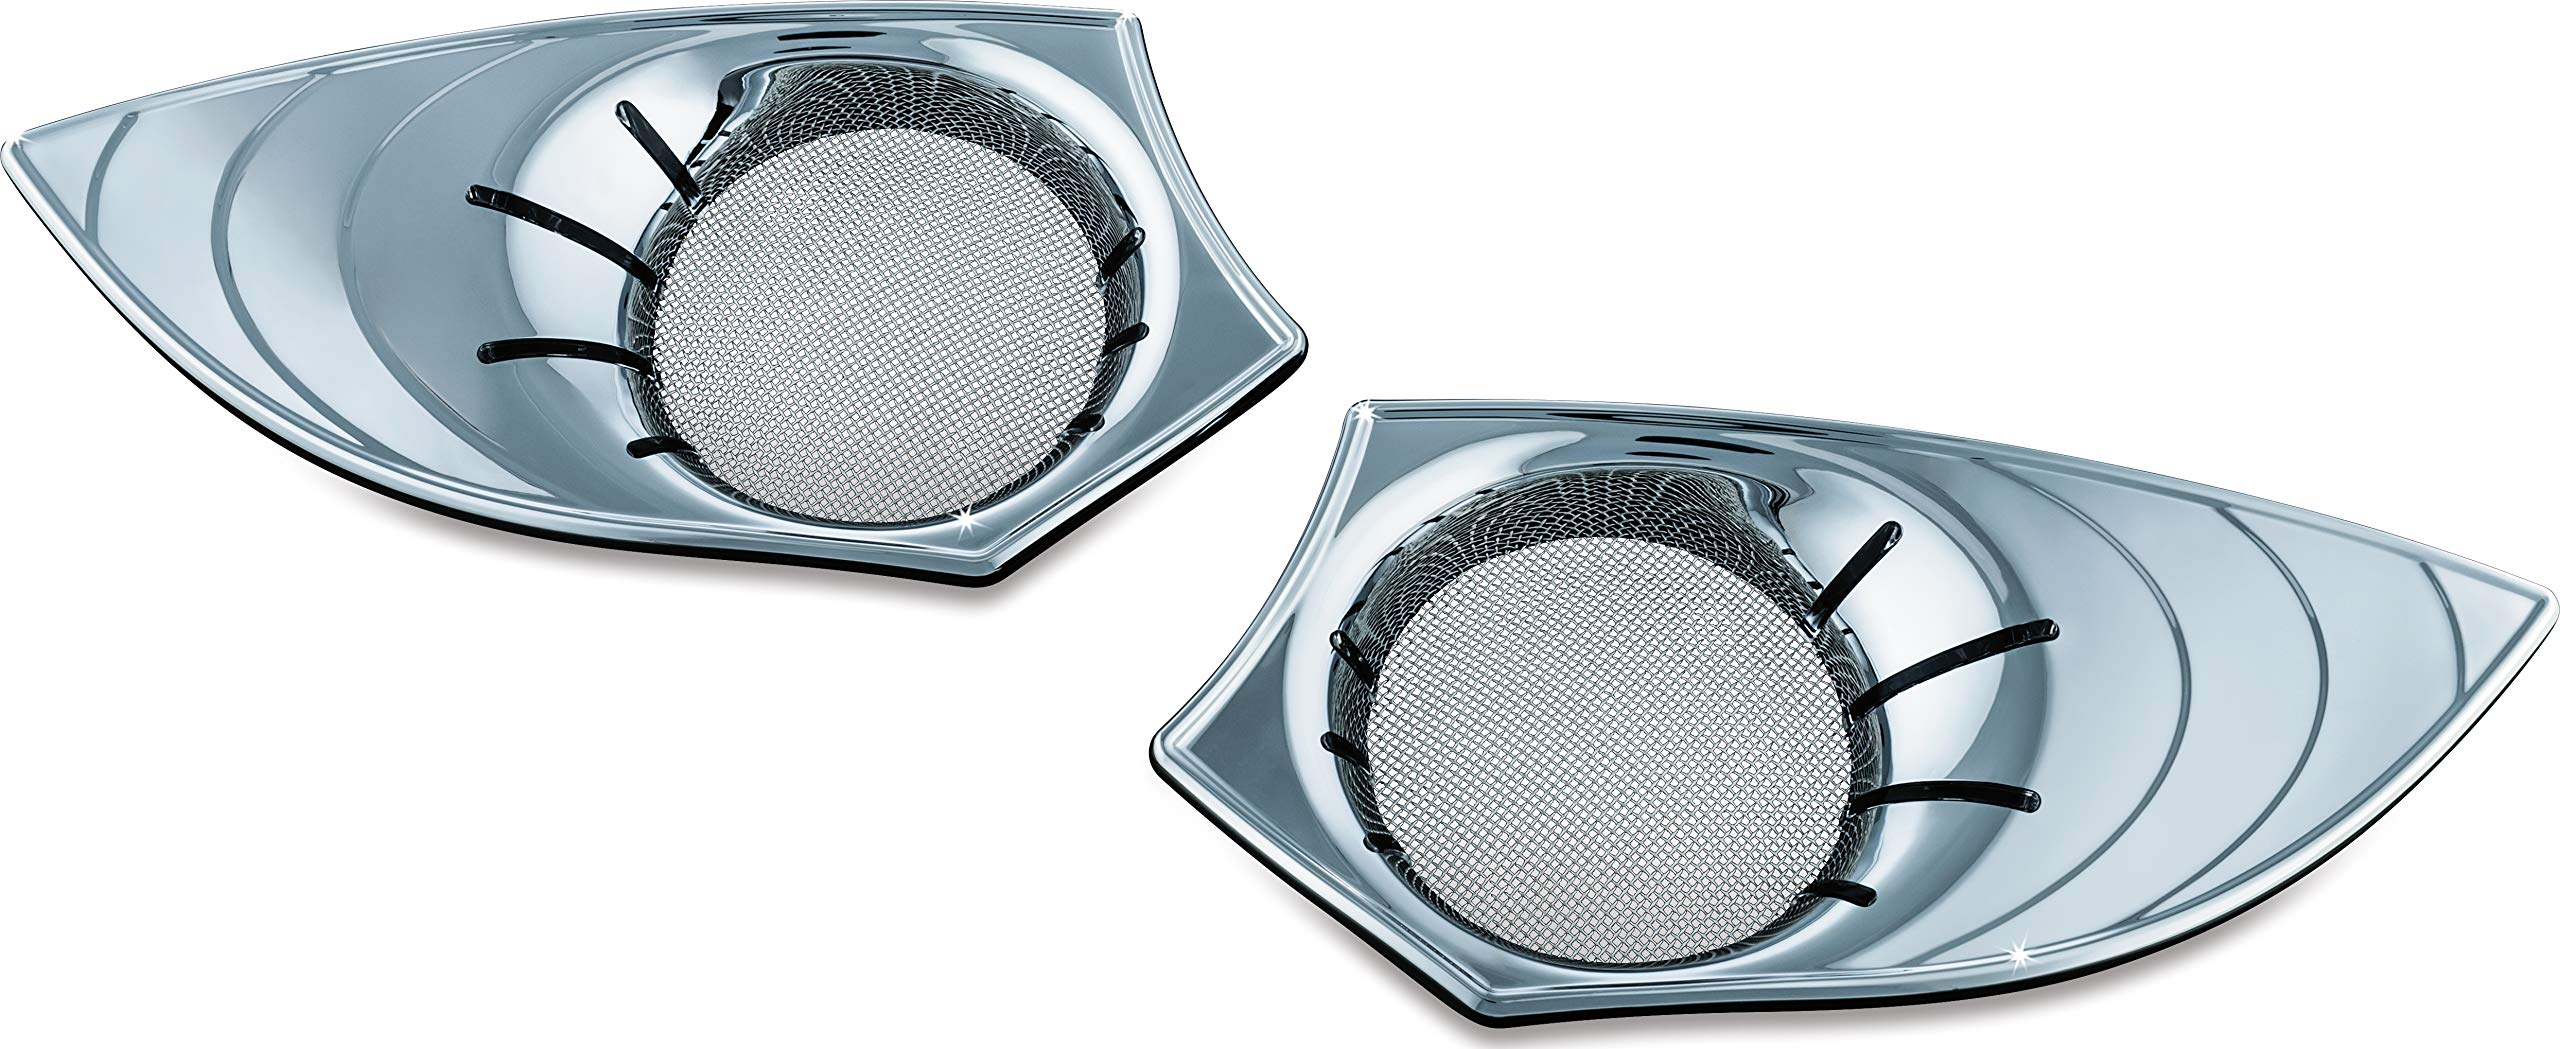 Kuryakyn 7698 Motorcycle Accent Accessory: LED Speaker Grills for 2010-17 Victory Motorcycles, Chrome, 1 Pair by Kuryakyn